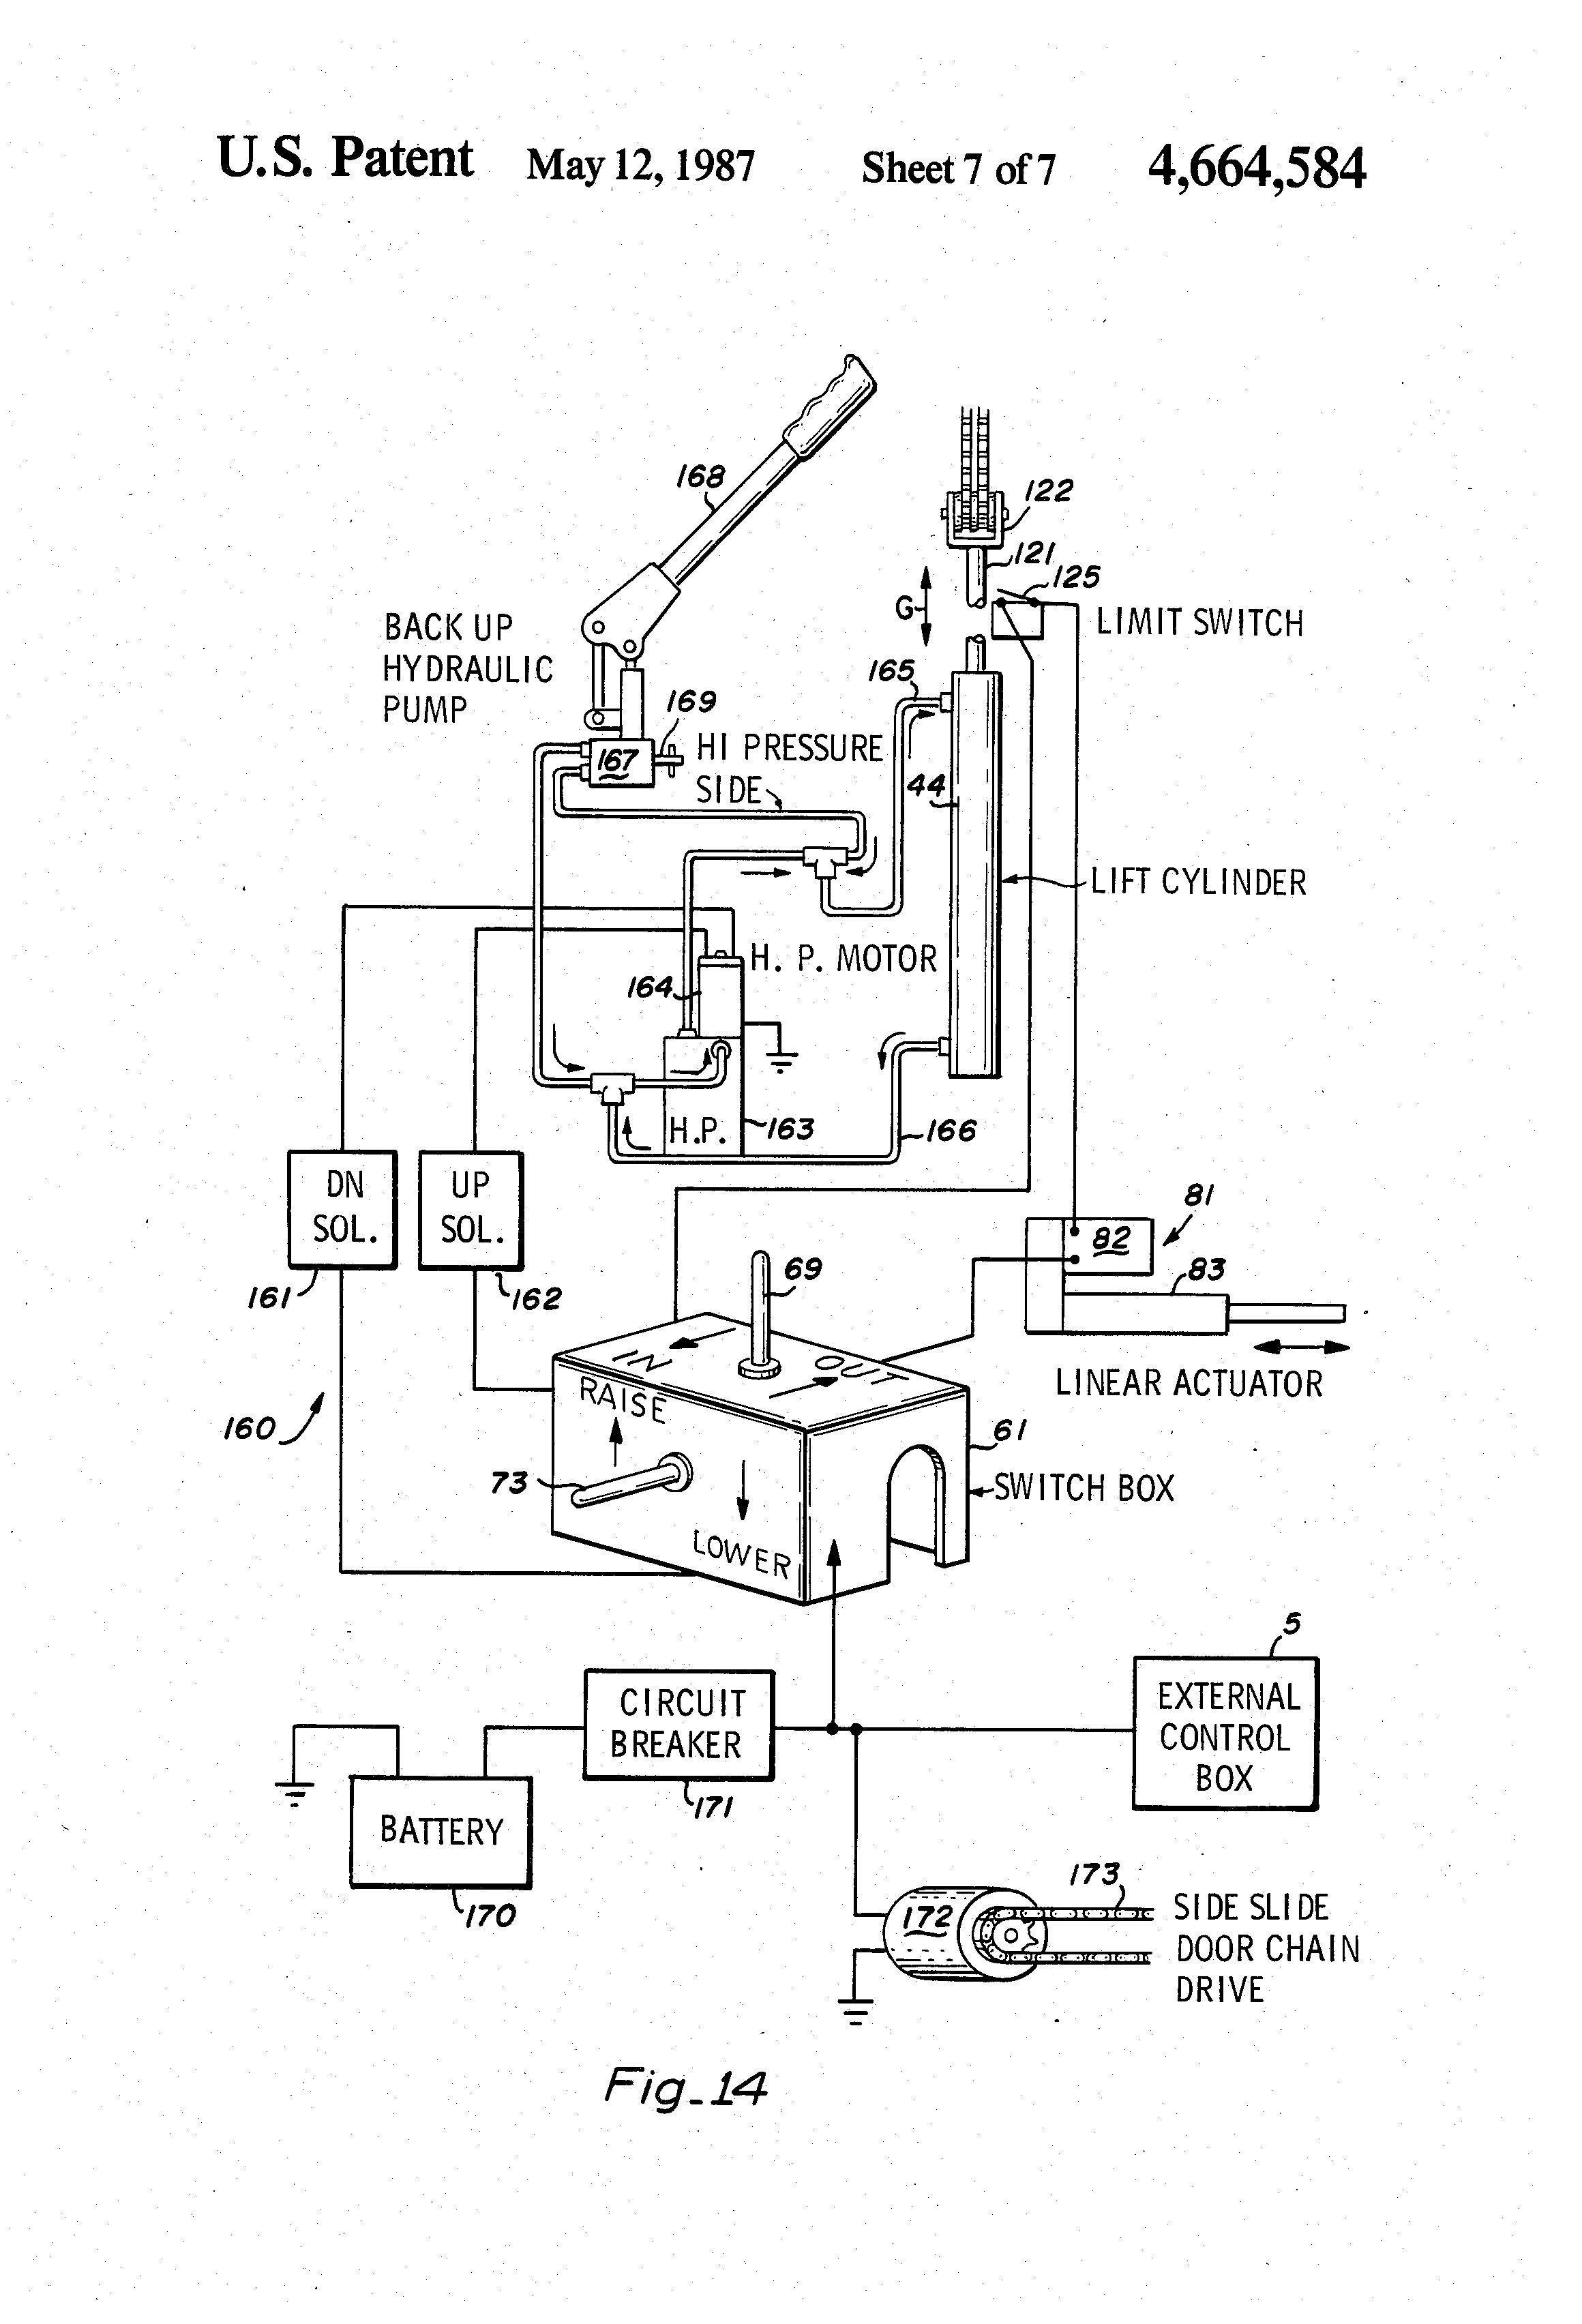 Wiring Diagram For Auto Lift